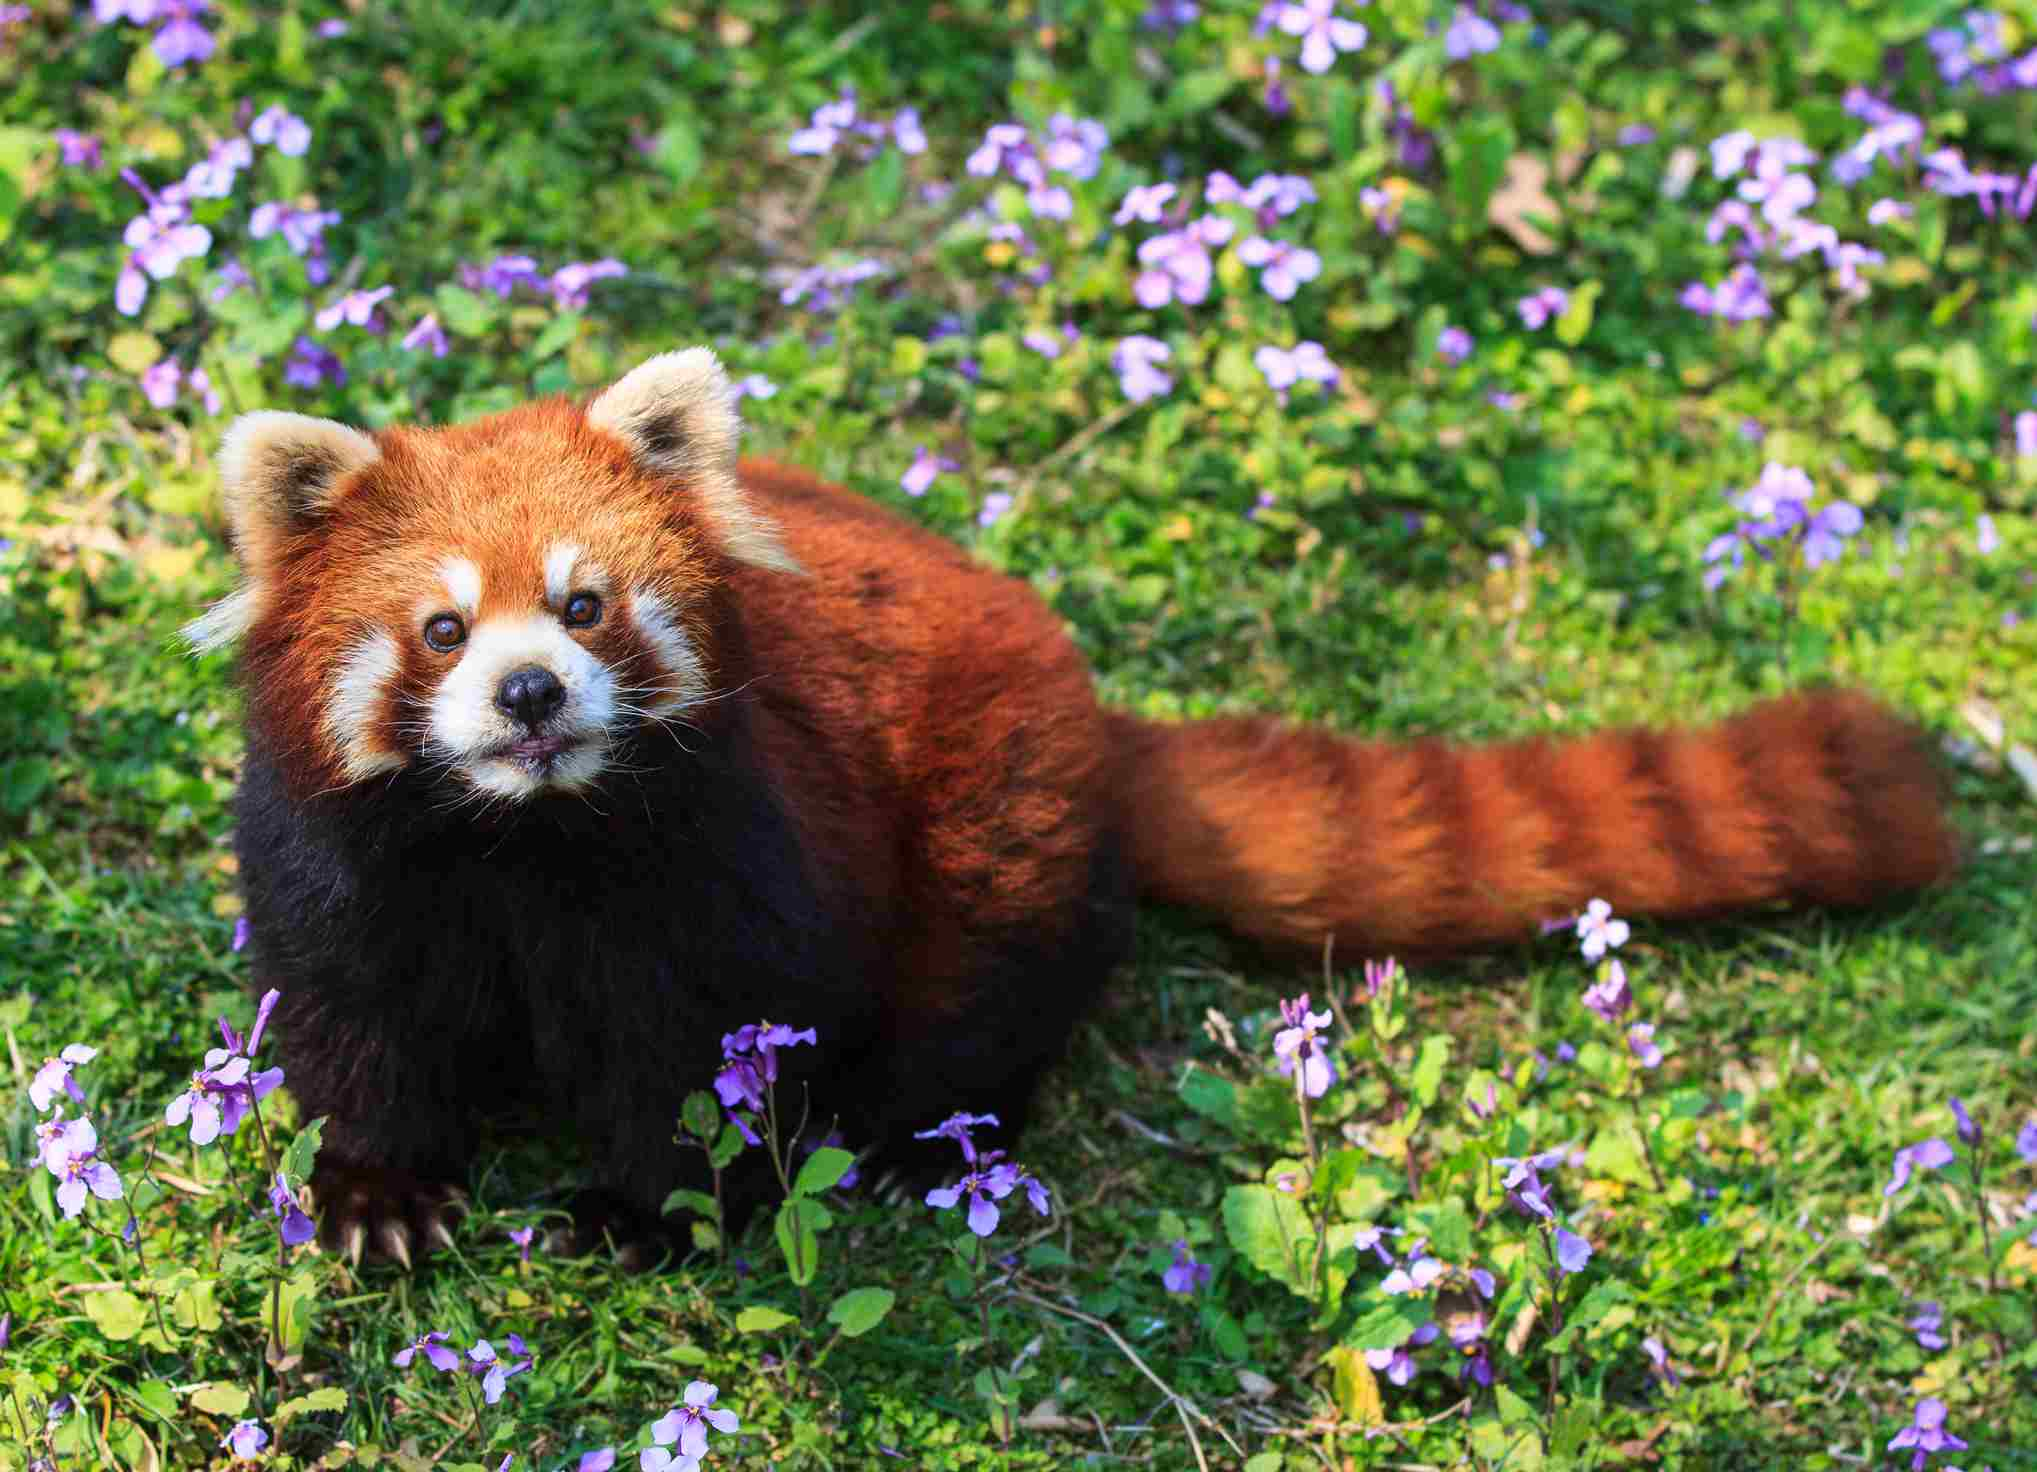 A red panda has reddish fur, a masked face, and a banded tail.